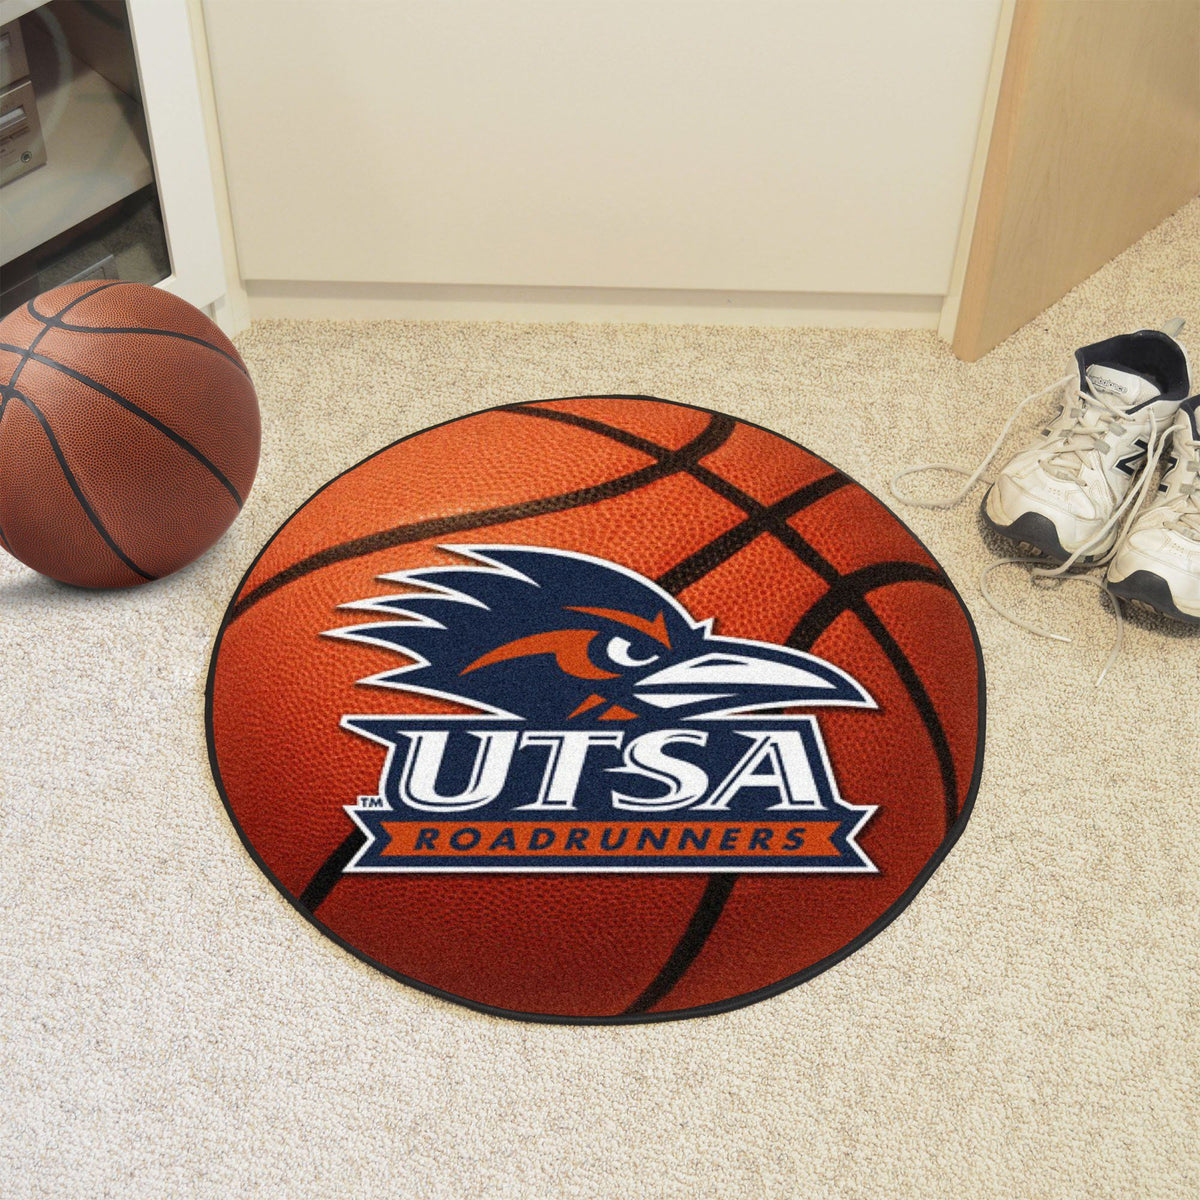 Collegiate - Basketball Mat: T - Z Collegiate Mats, Rectangular Mats, Basketball Mat, Collegiate, Home Fan Mats UTSA